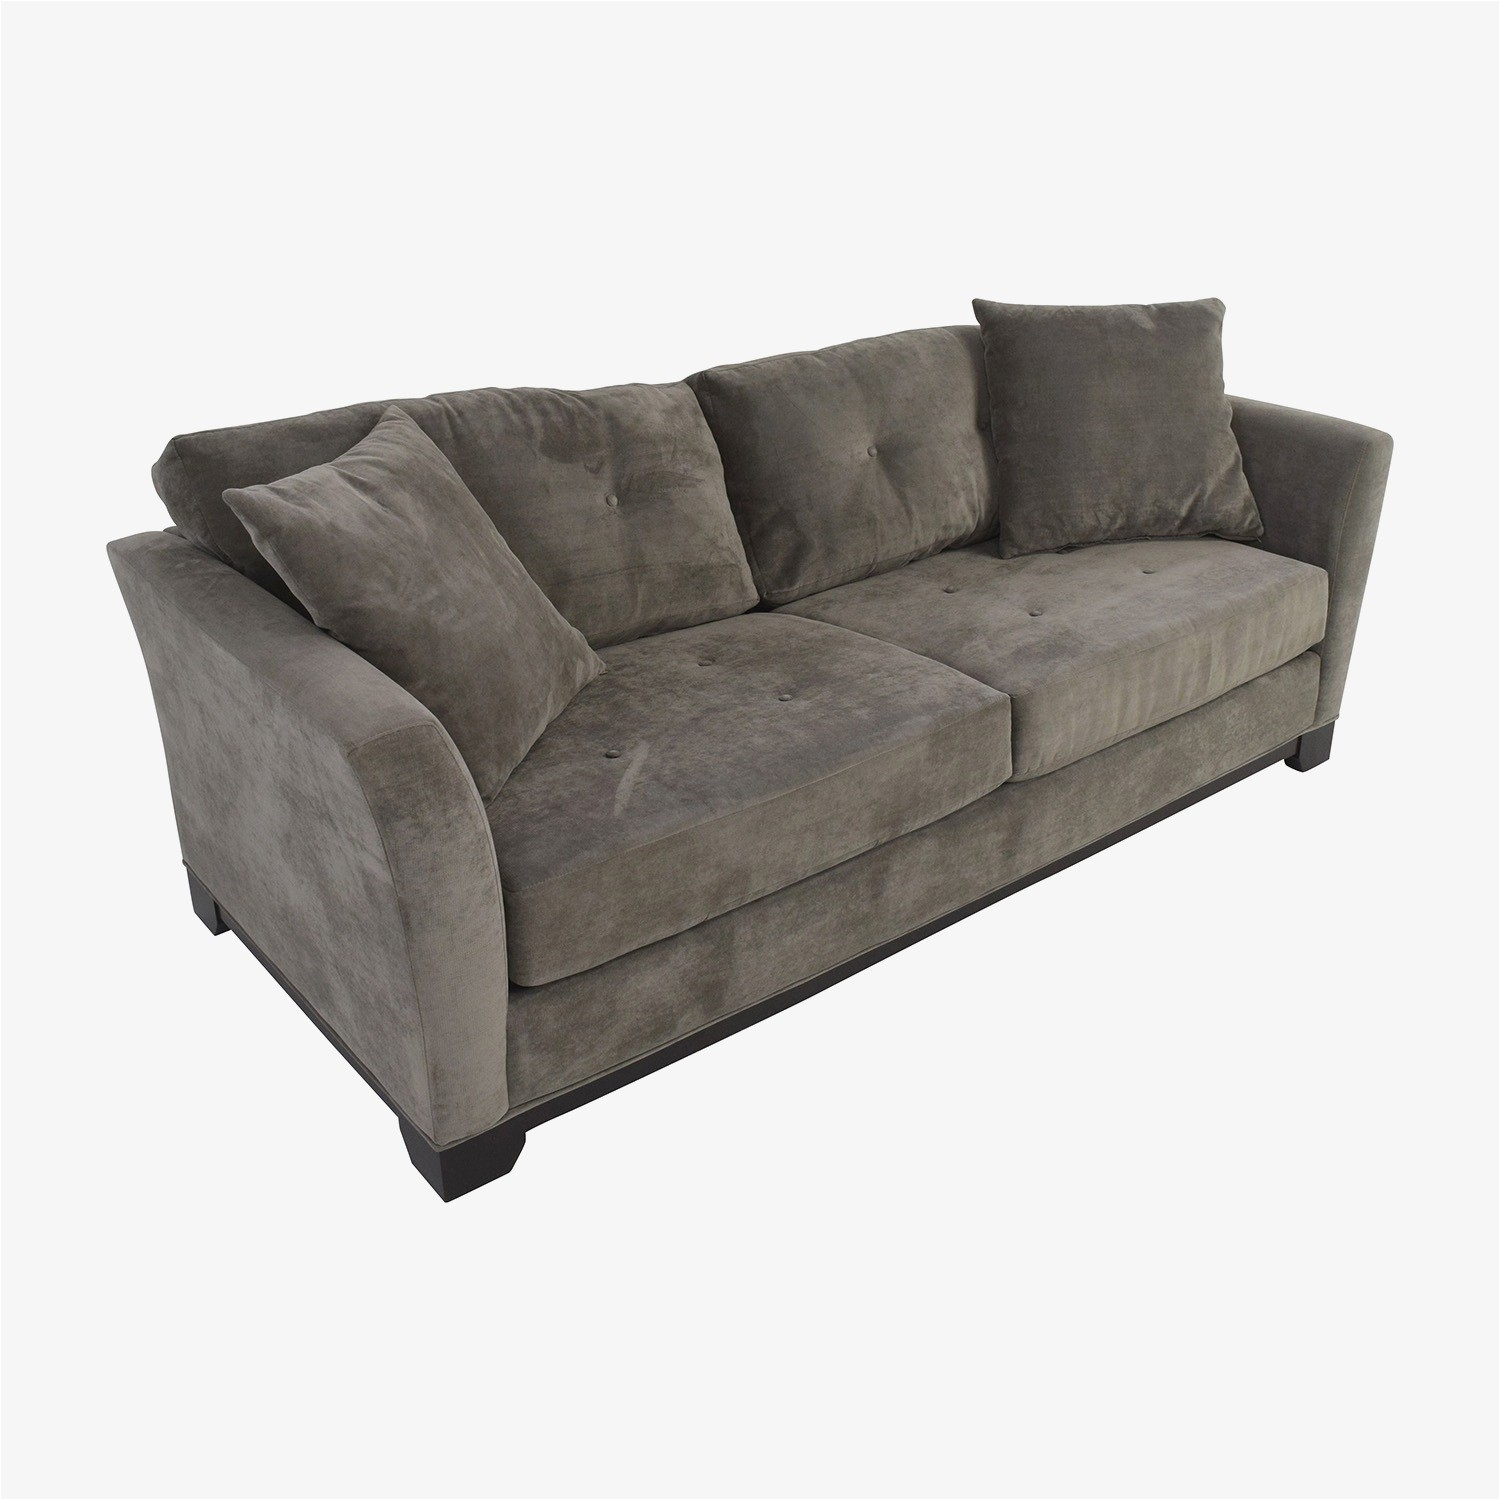 Living Spaces Sleeper Sofa – Home Decor 88 With Regard To Aspen 2 Piece Sleeper Sectionals With Laf Chaise (View 12 of 25)